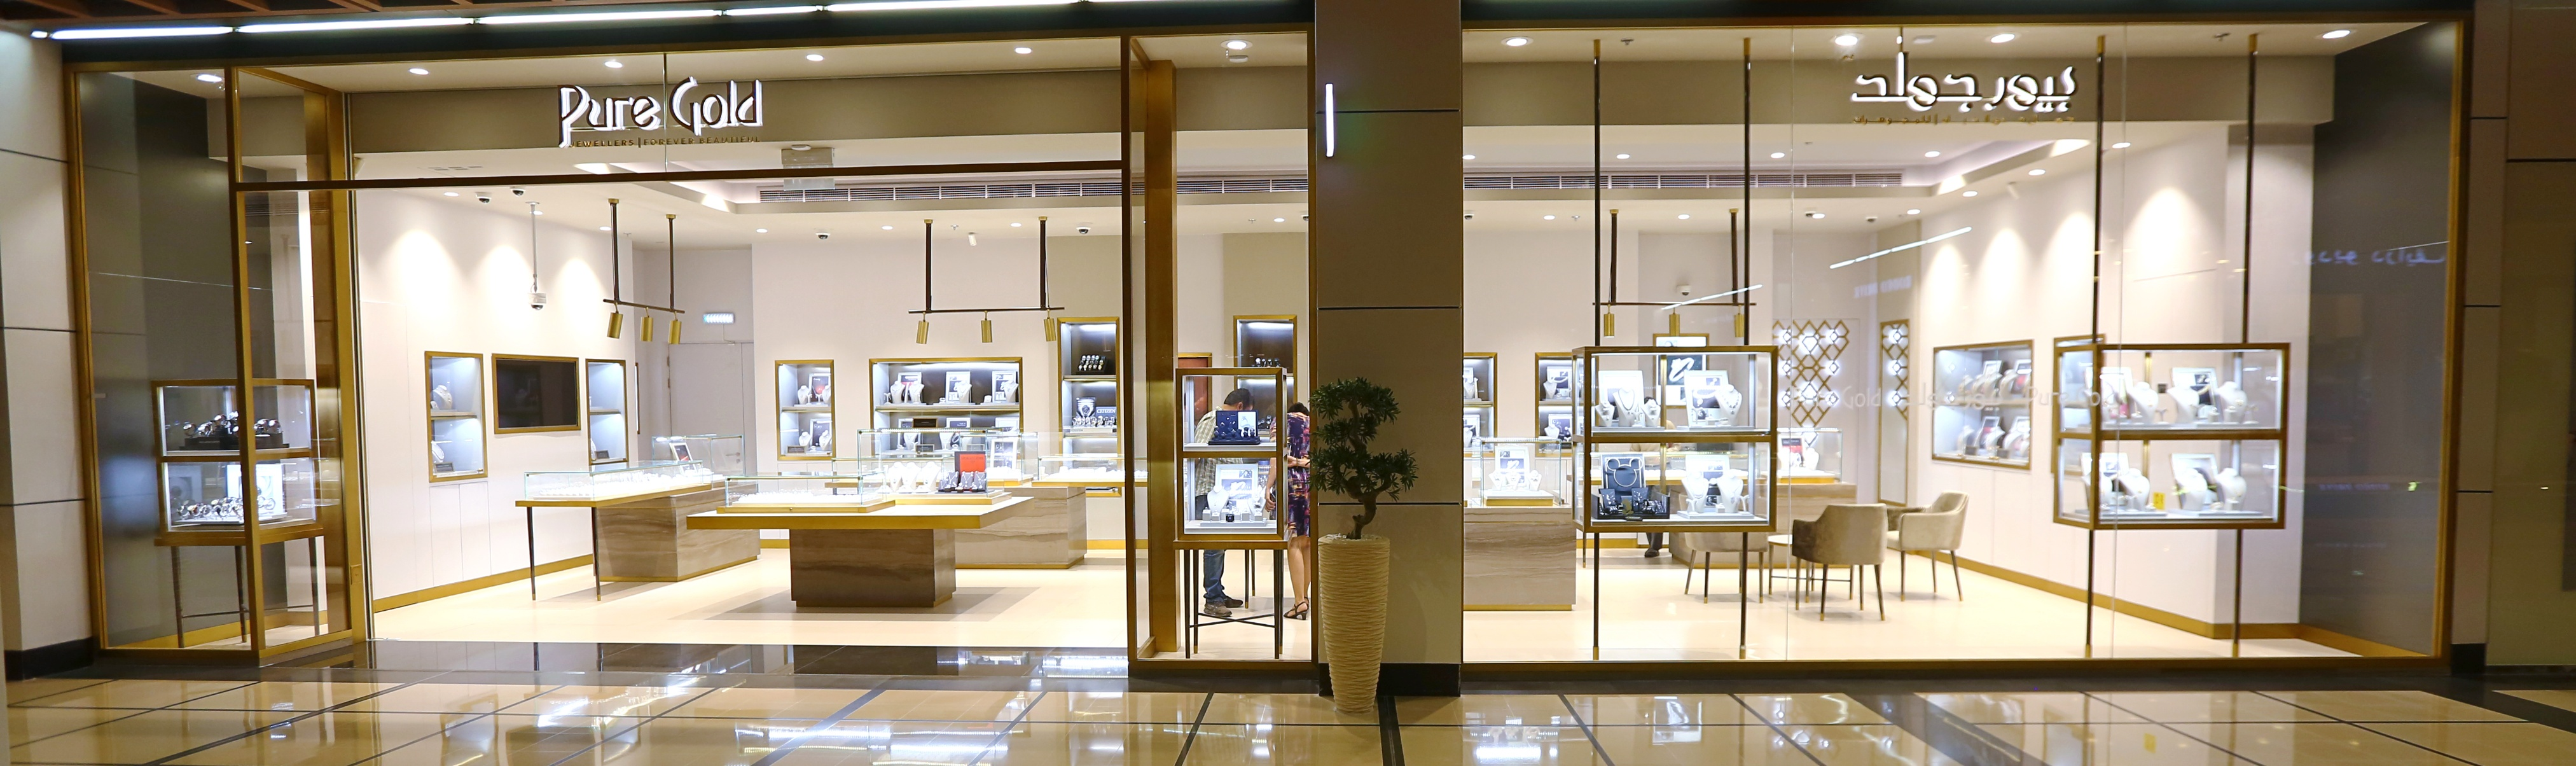 dd5bd70473c Dubai-based jewellery retailer Pure Gold Jewellers has opened seven new  concept stores in the UAE